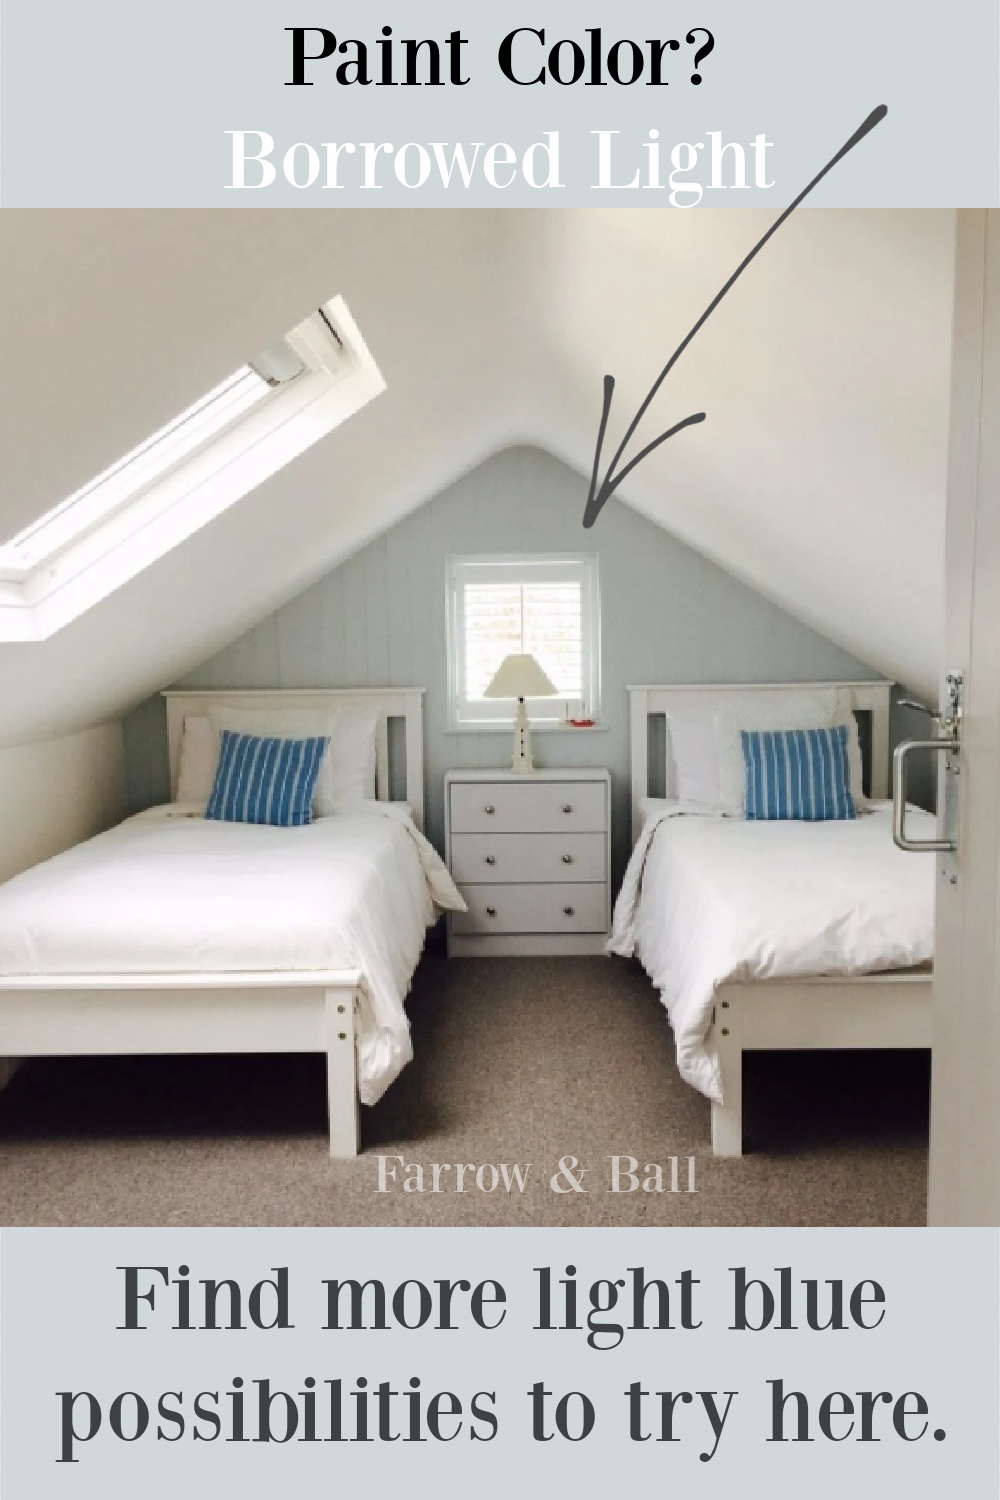 Borrowed Light paint color (Farrow & Ball) in a charming bedroom with skylight and twin beds. #borrowedlight #lightblue #paintcolors